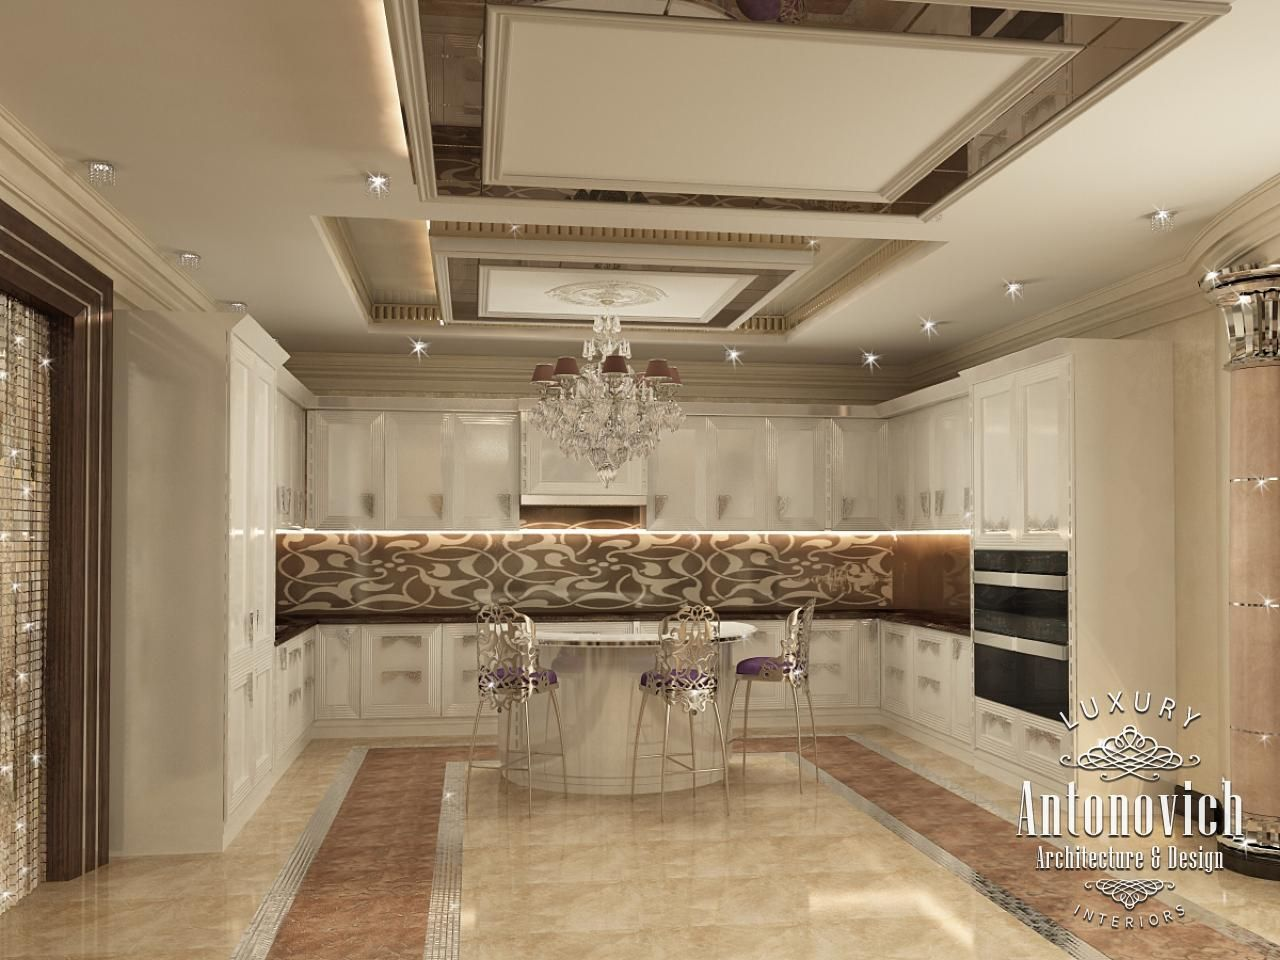 Kitchen Design In Dubai To Abu Dhabi Photo 1